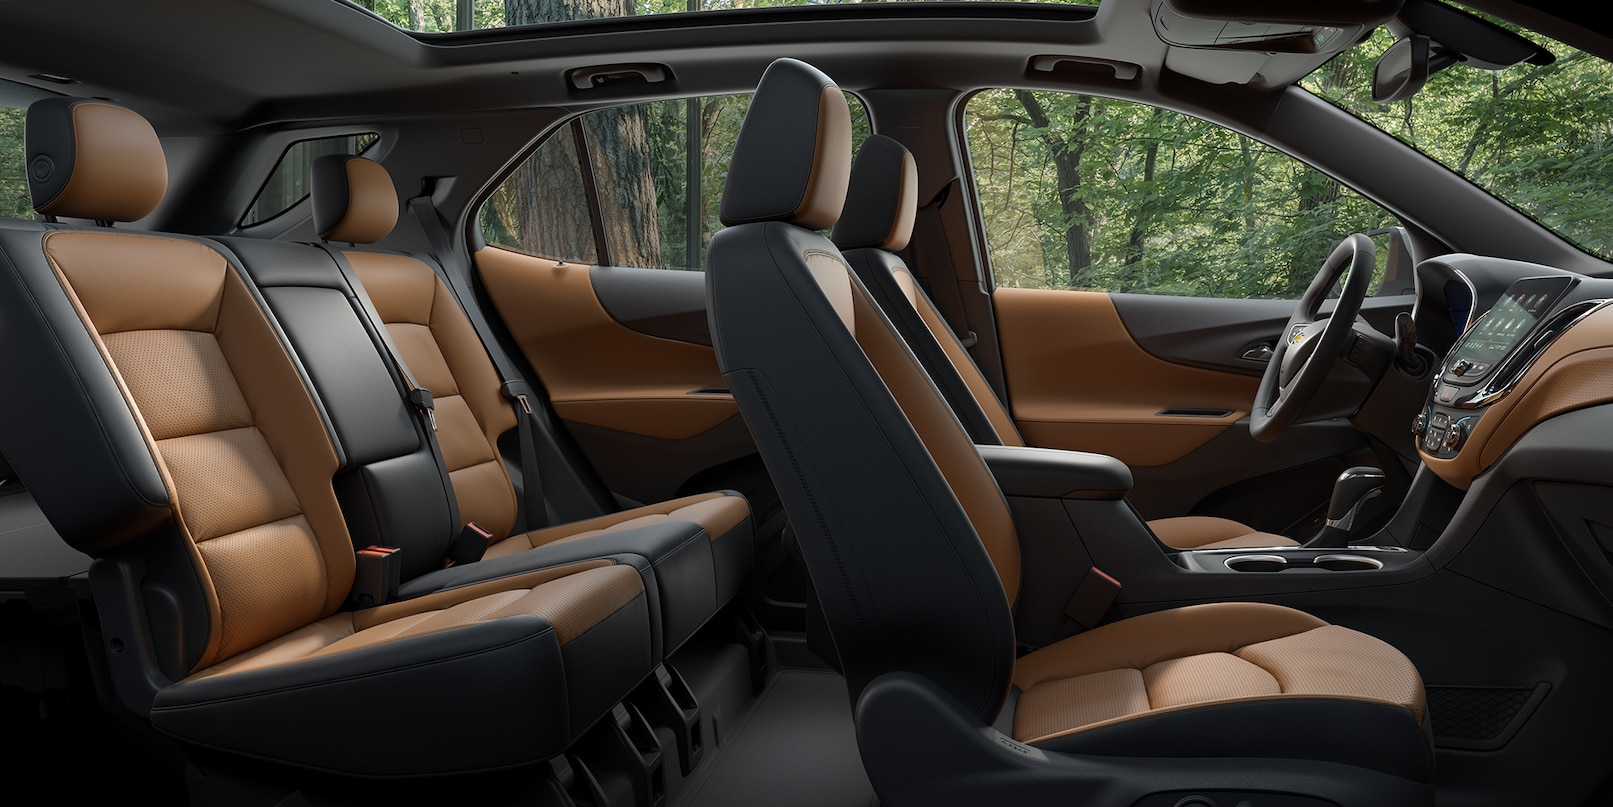 Luxurious Seating in the 2020 Equinox